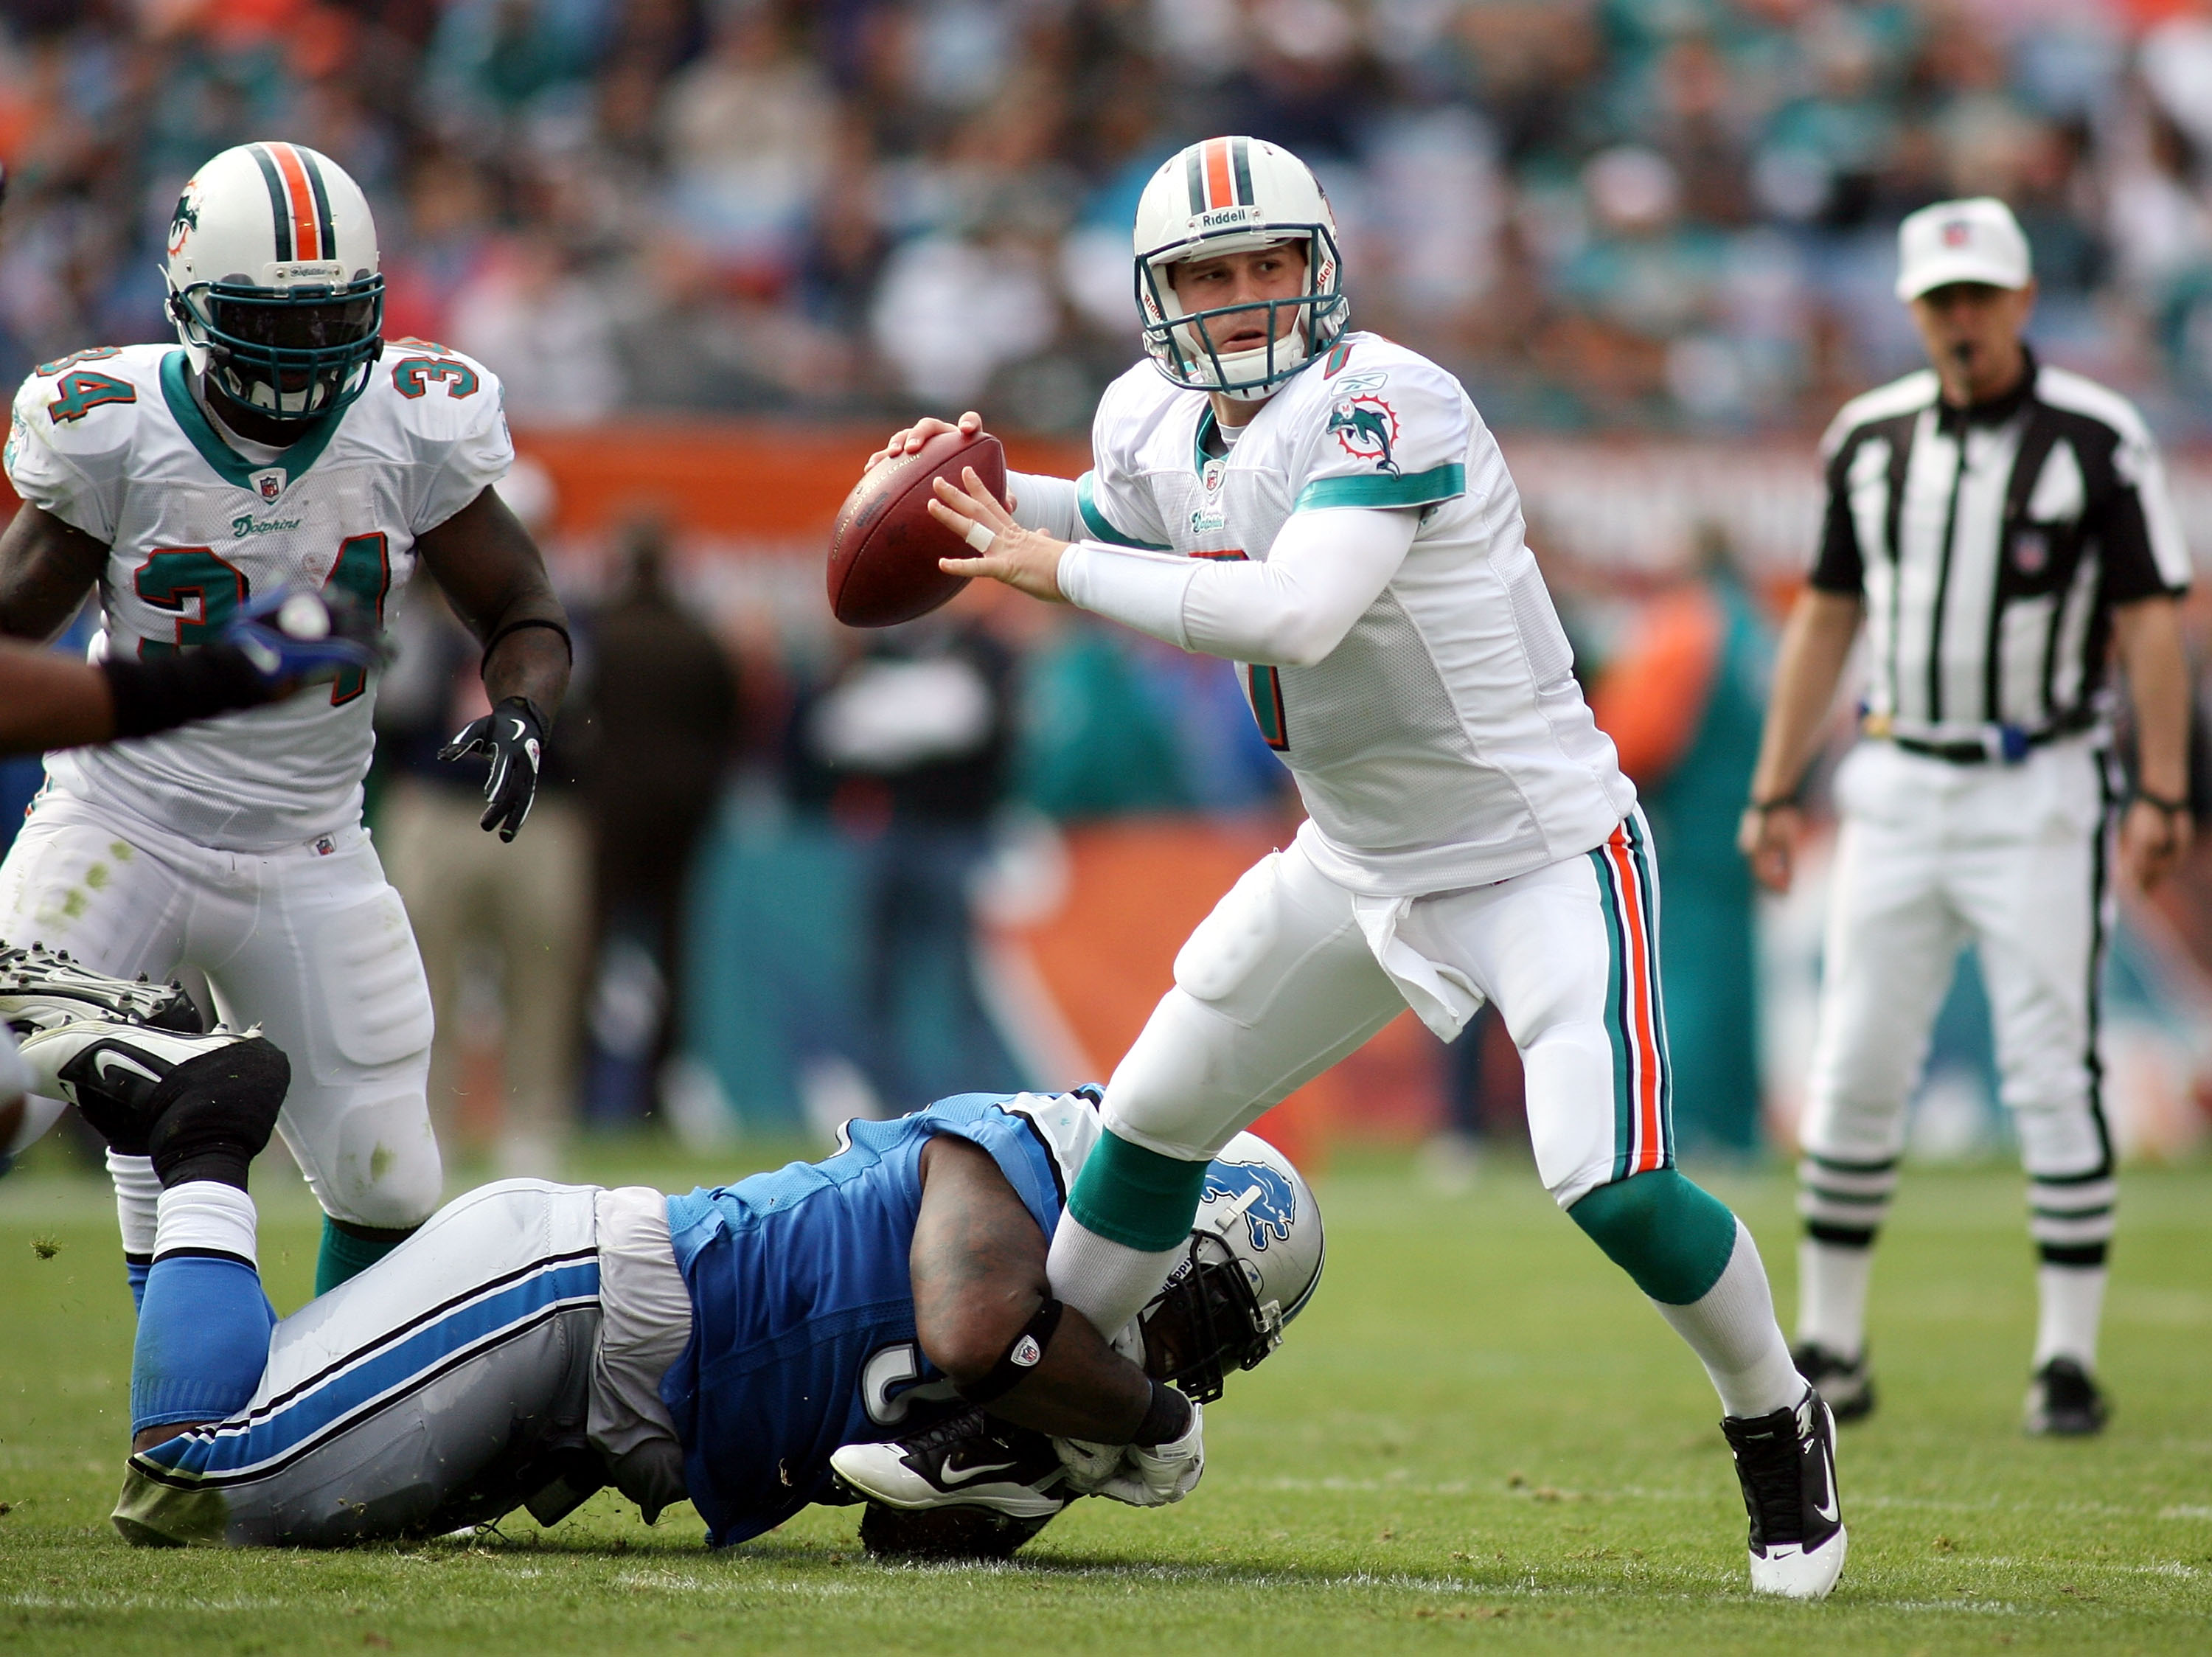 faa72ae5 Miami Dolphins vs. Detroit Lions: Late Game Collapse Sums Up the ...